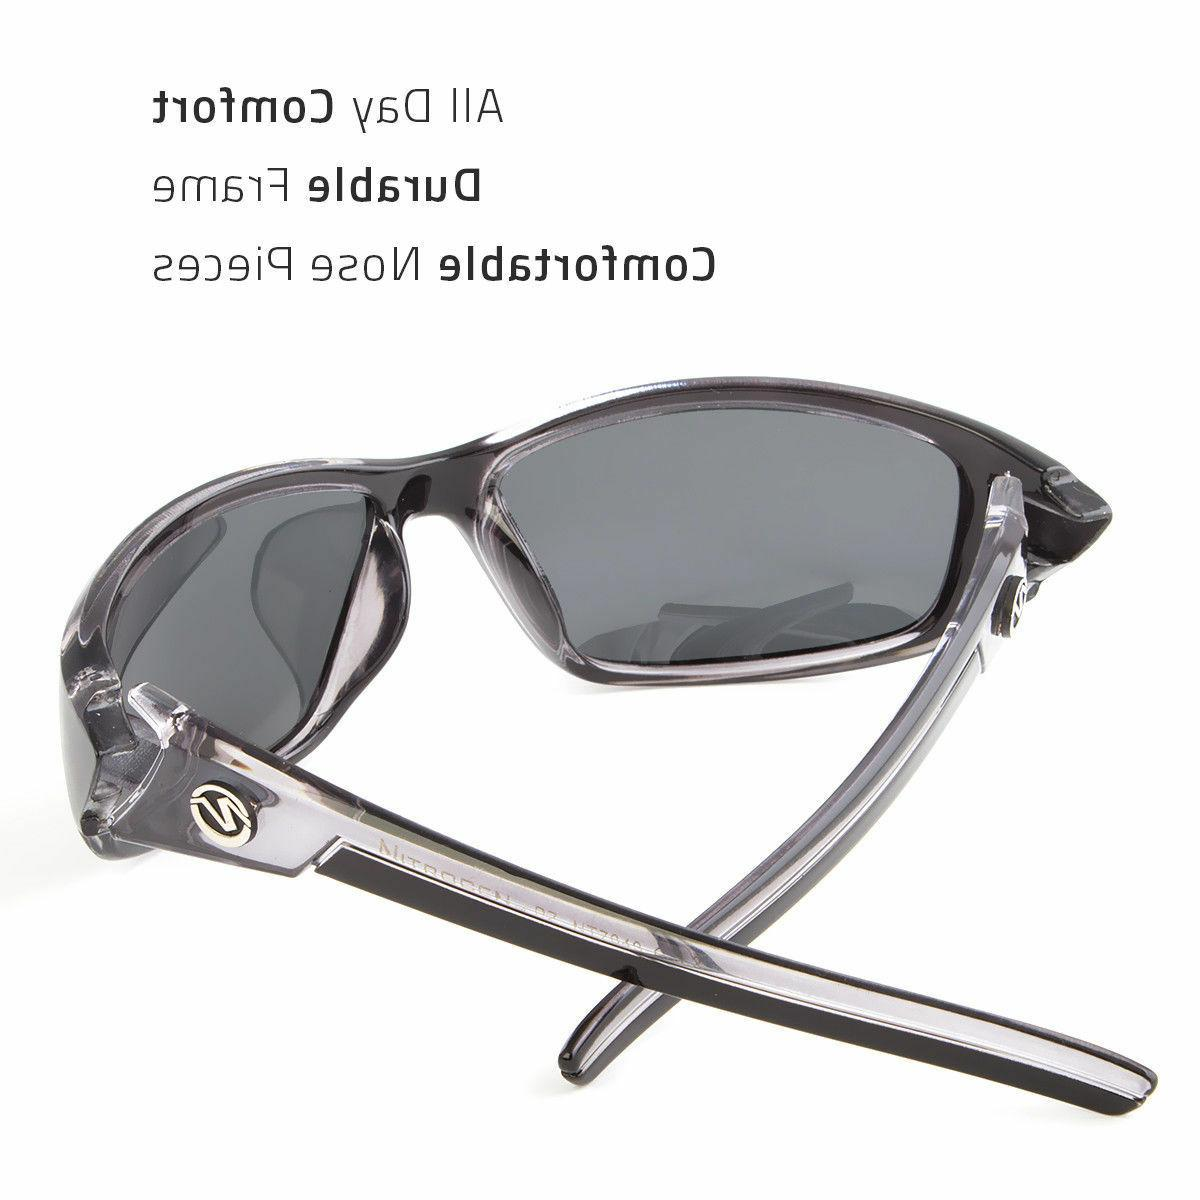 New Nitrogen Mens Anti Glare Driving Sunglasses